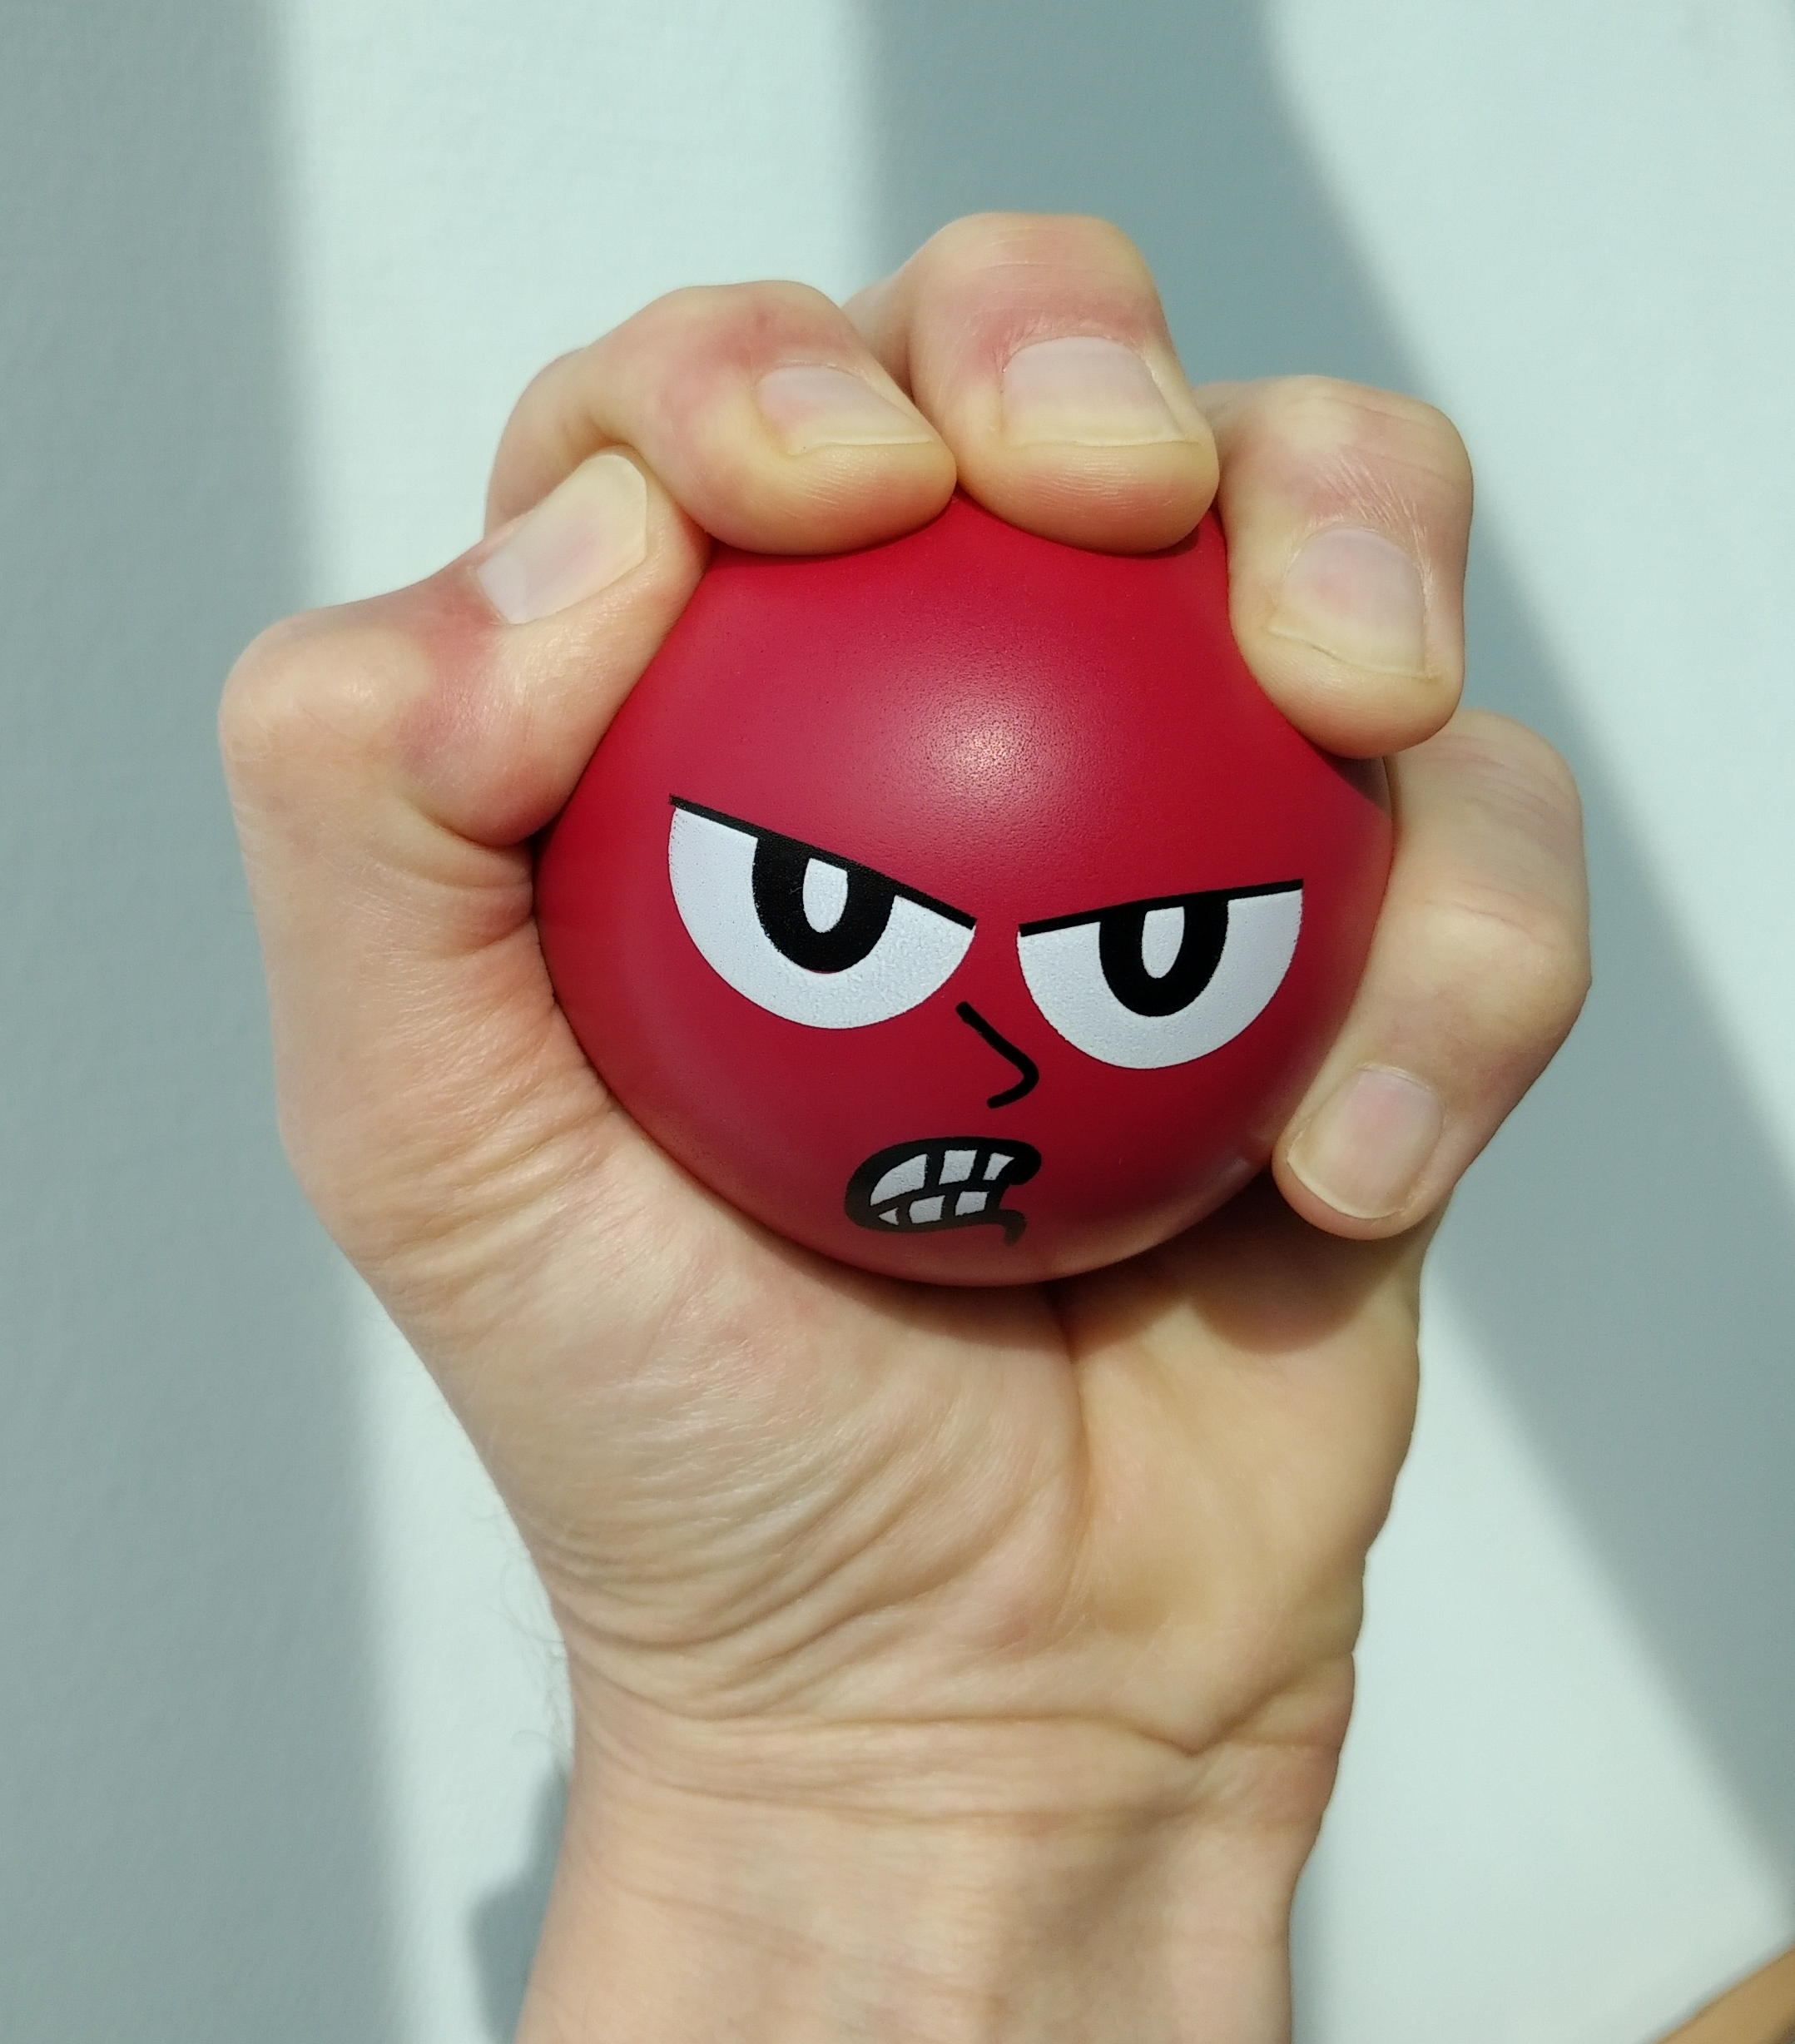 person's hand squeezing a red stress ball with an angry face on it, coping strategies, healthy coping mechanisms